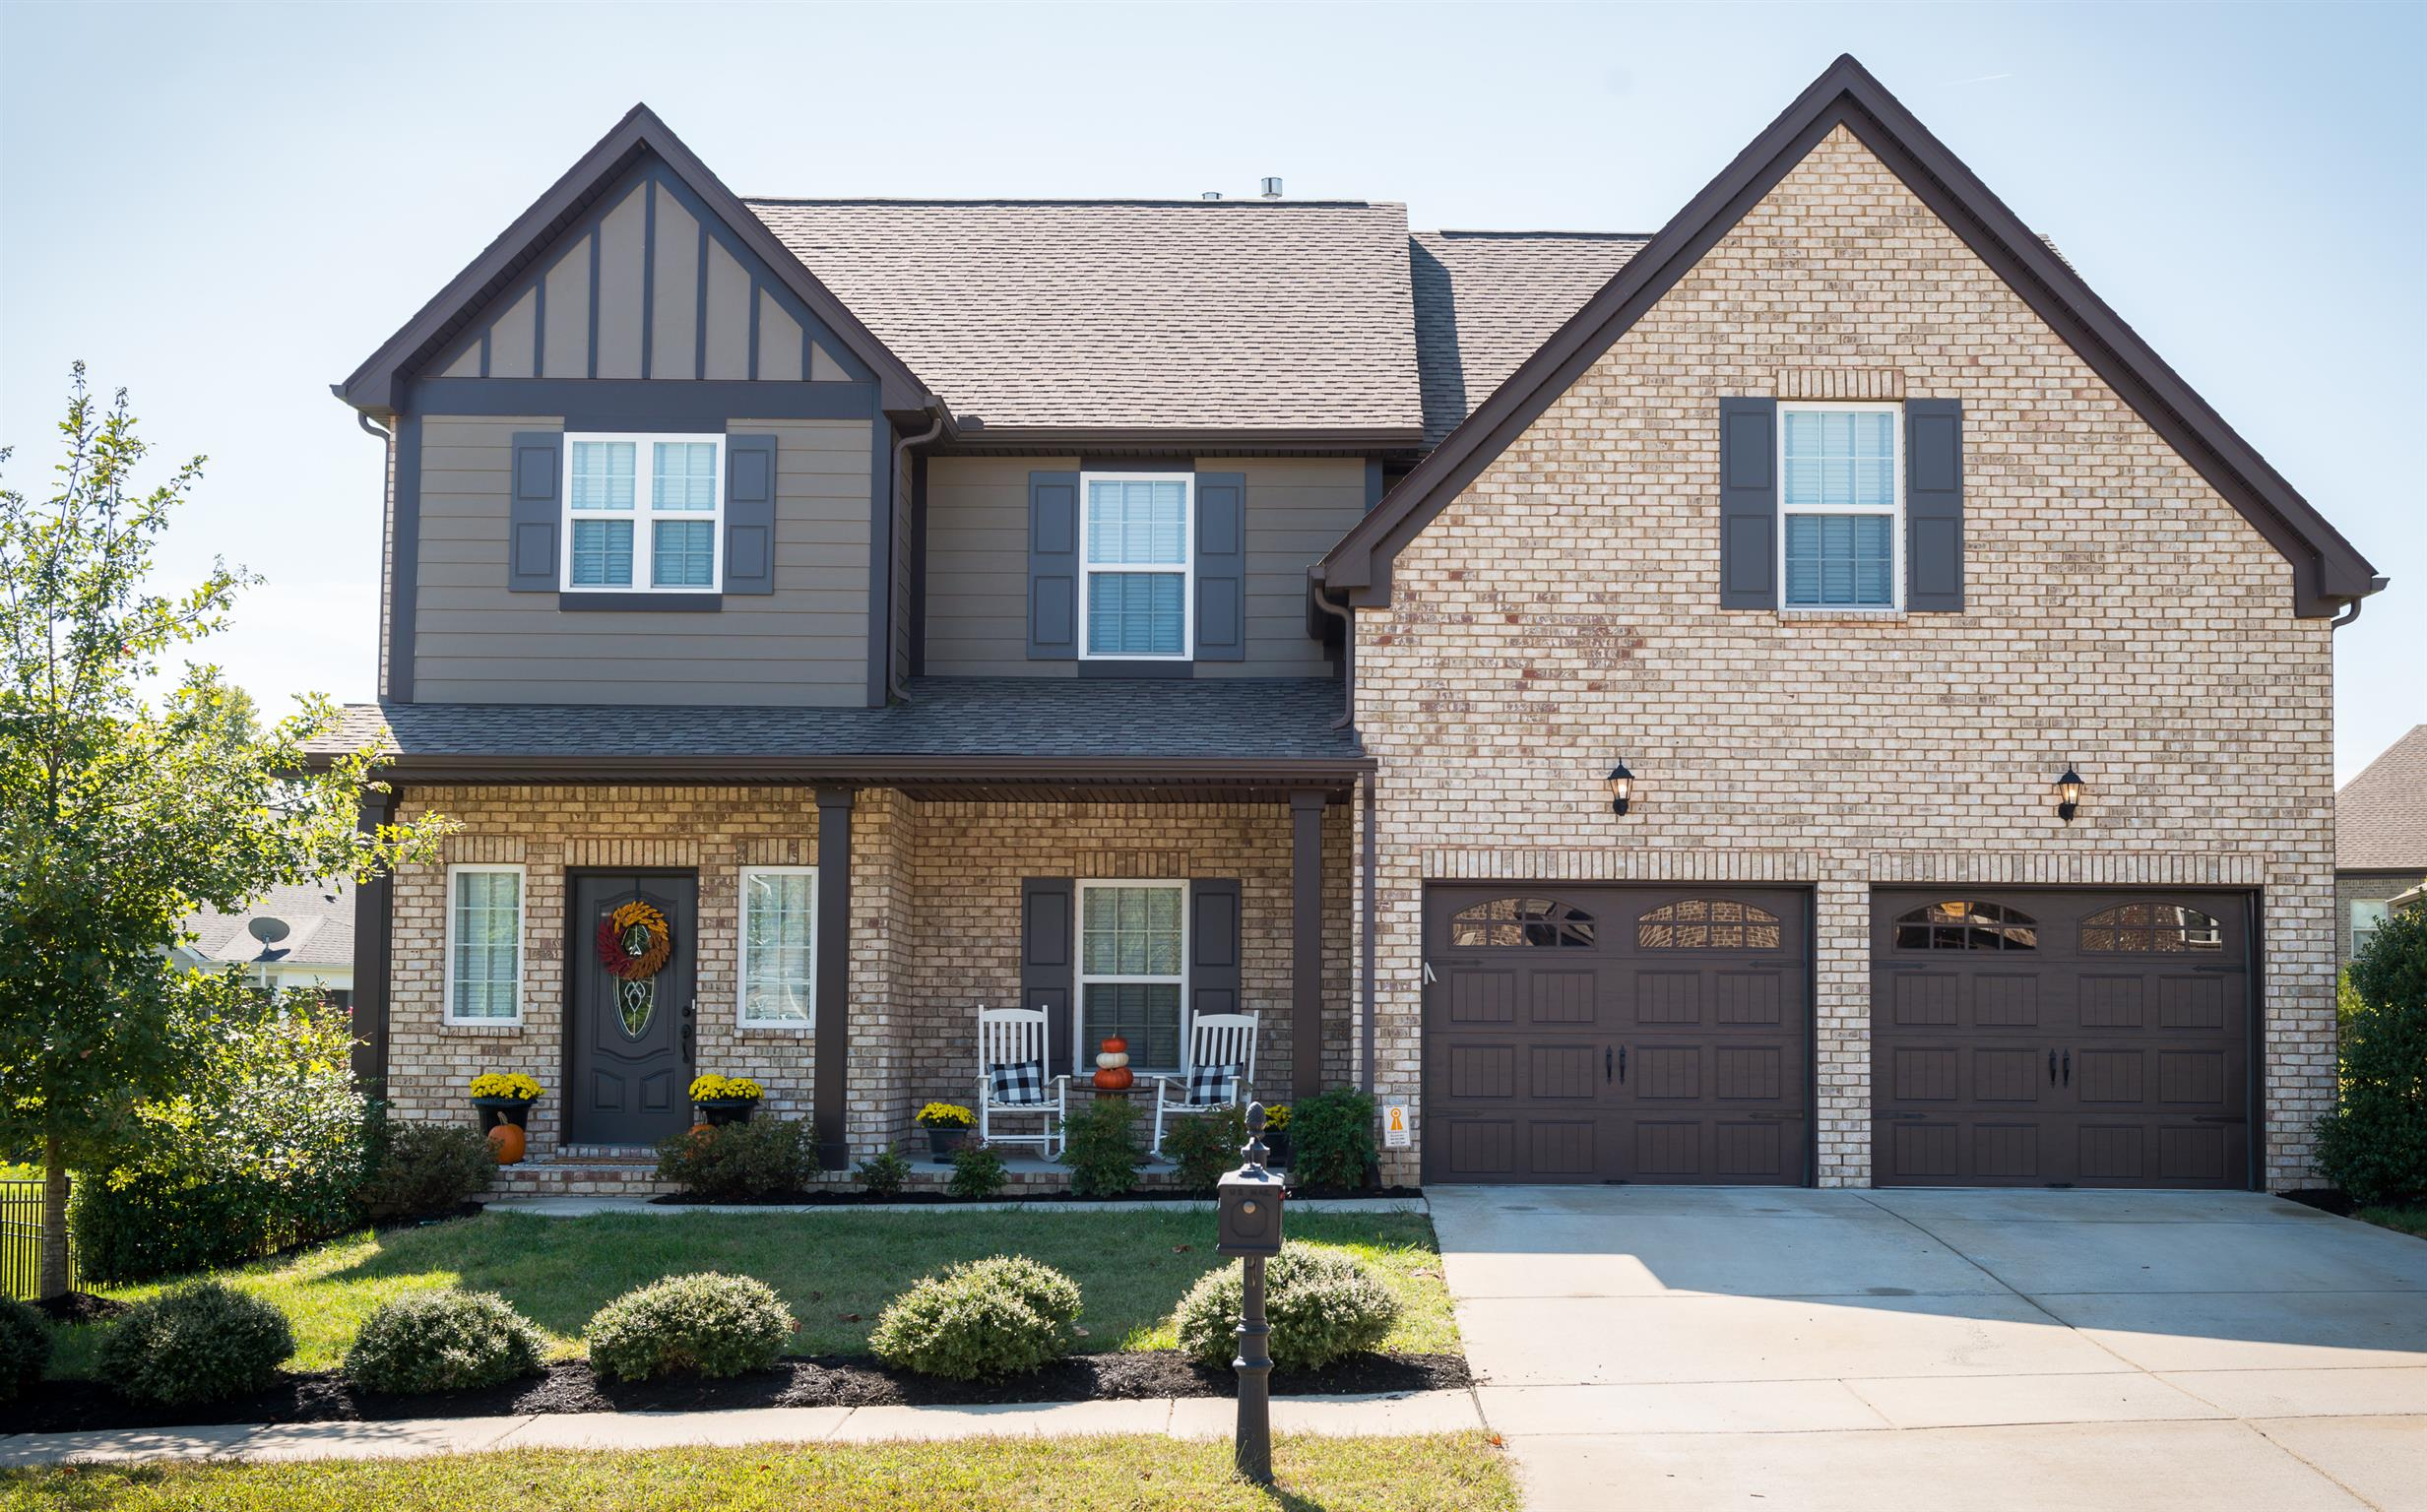 2207 Chaucer Park Ln, Thompsons Station, TN 37179 - Thompsons Station, TN real estate listing